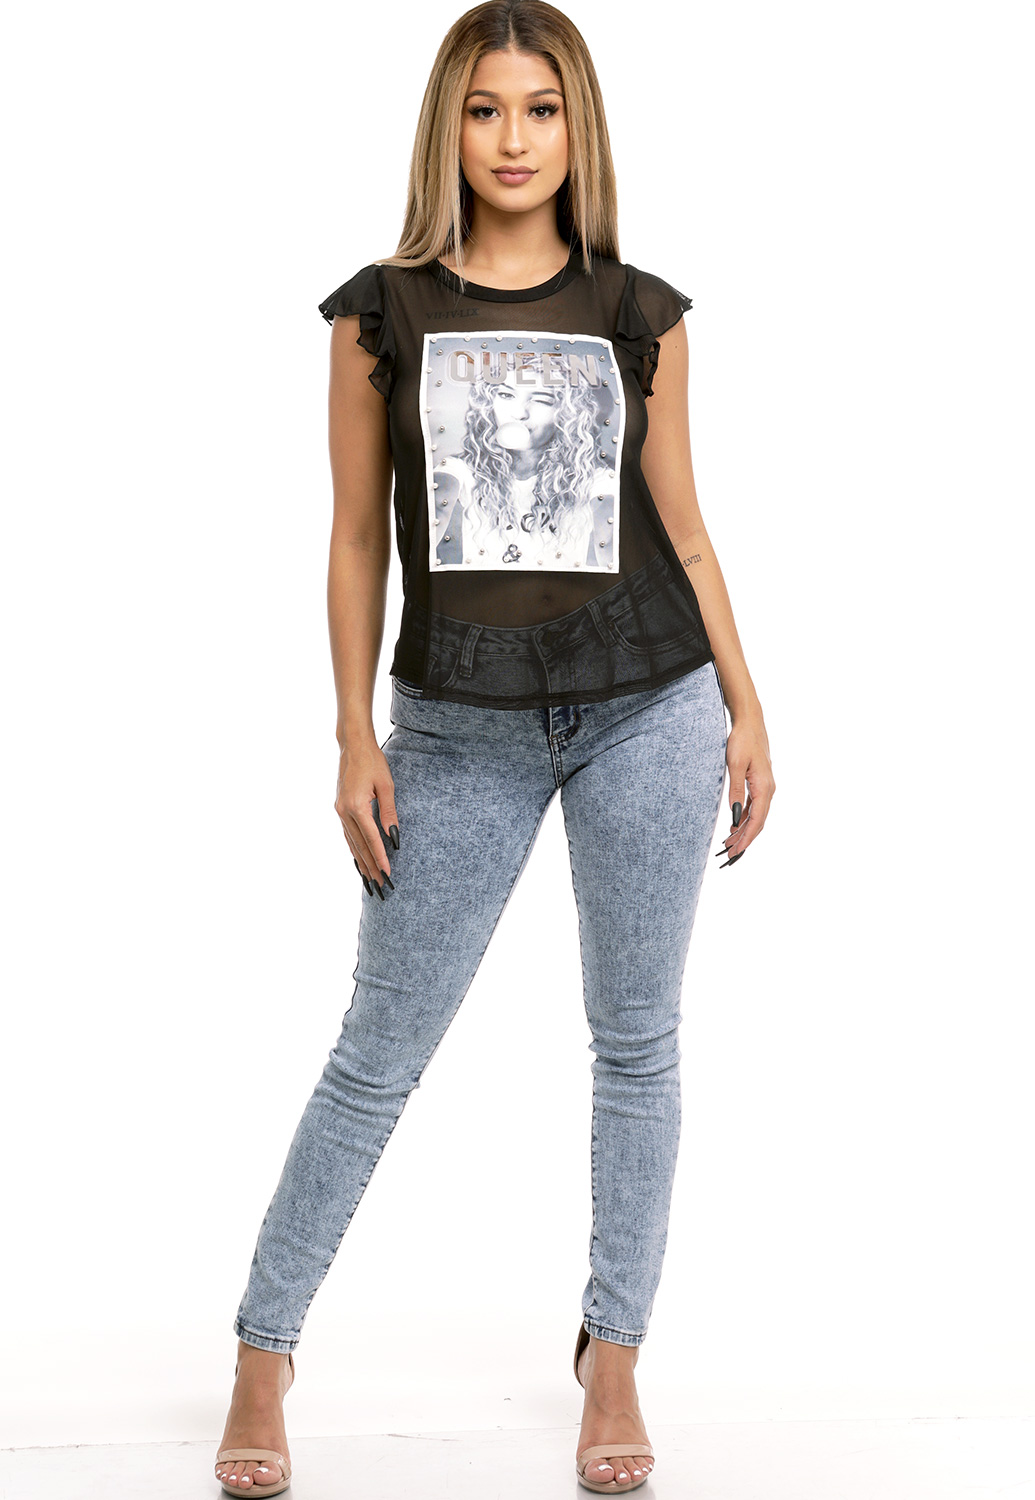 Queen Graphic Sheer Mesh Top